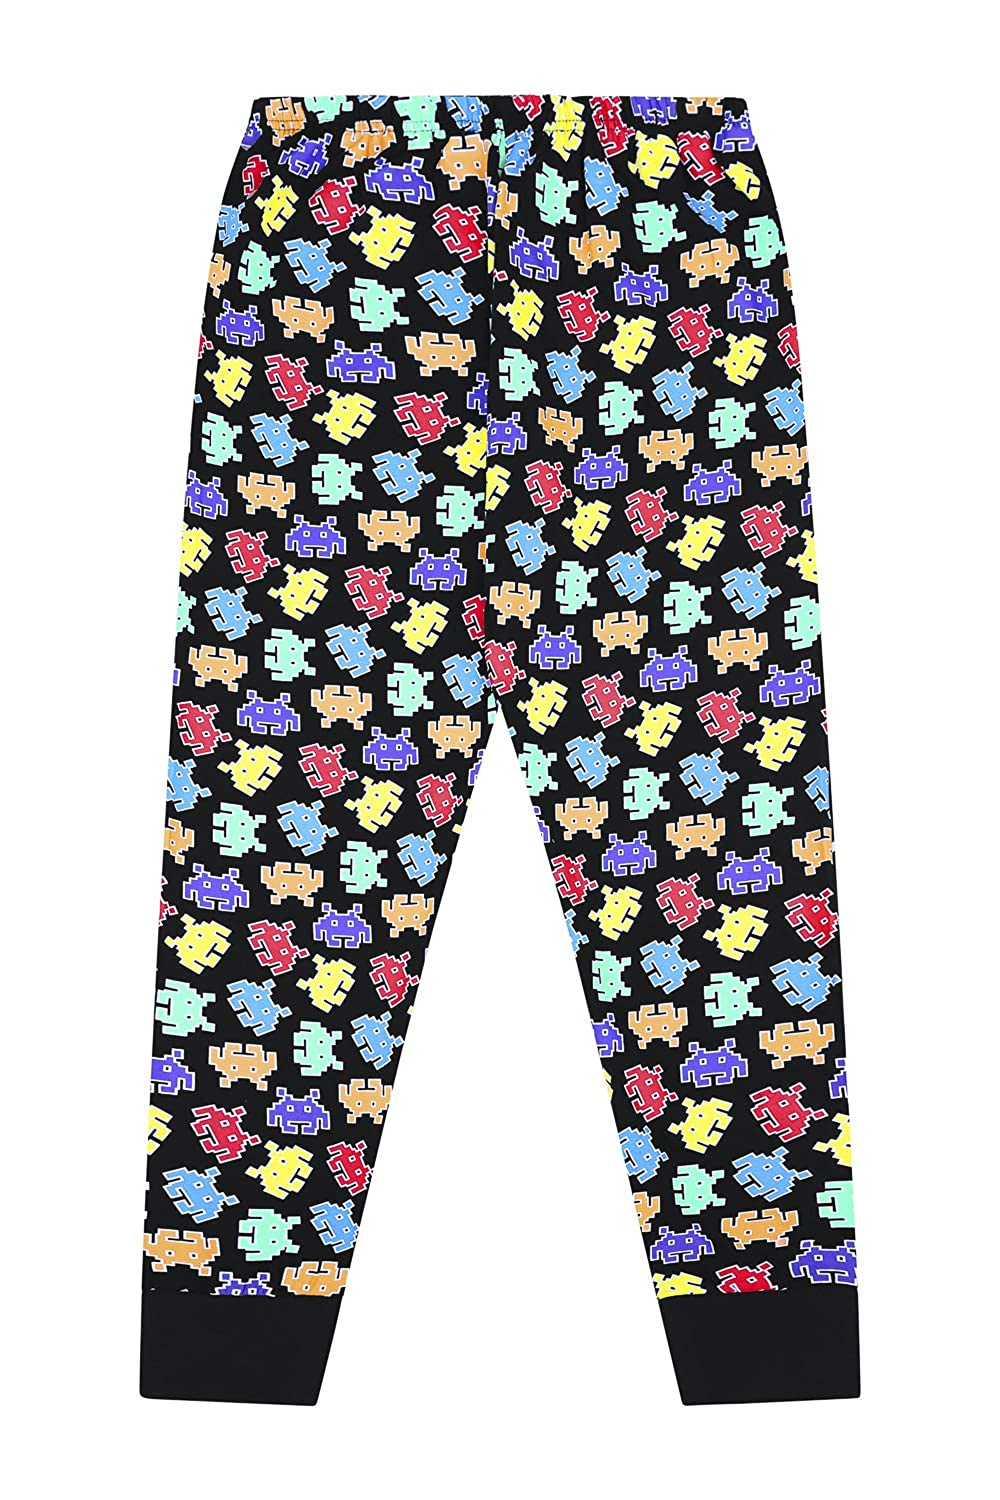 Game Over Space Invaders Gaming Black Cotton Long Pyjamas